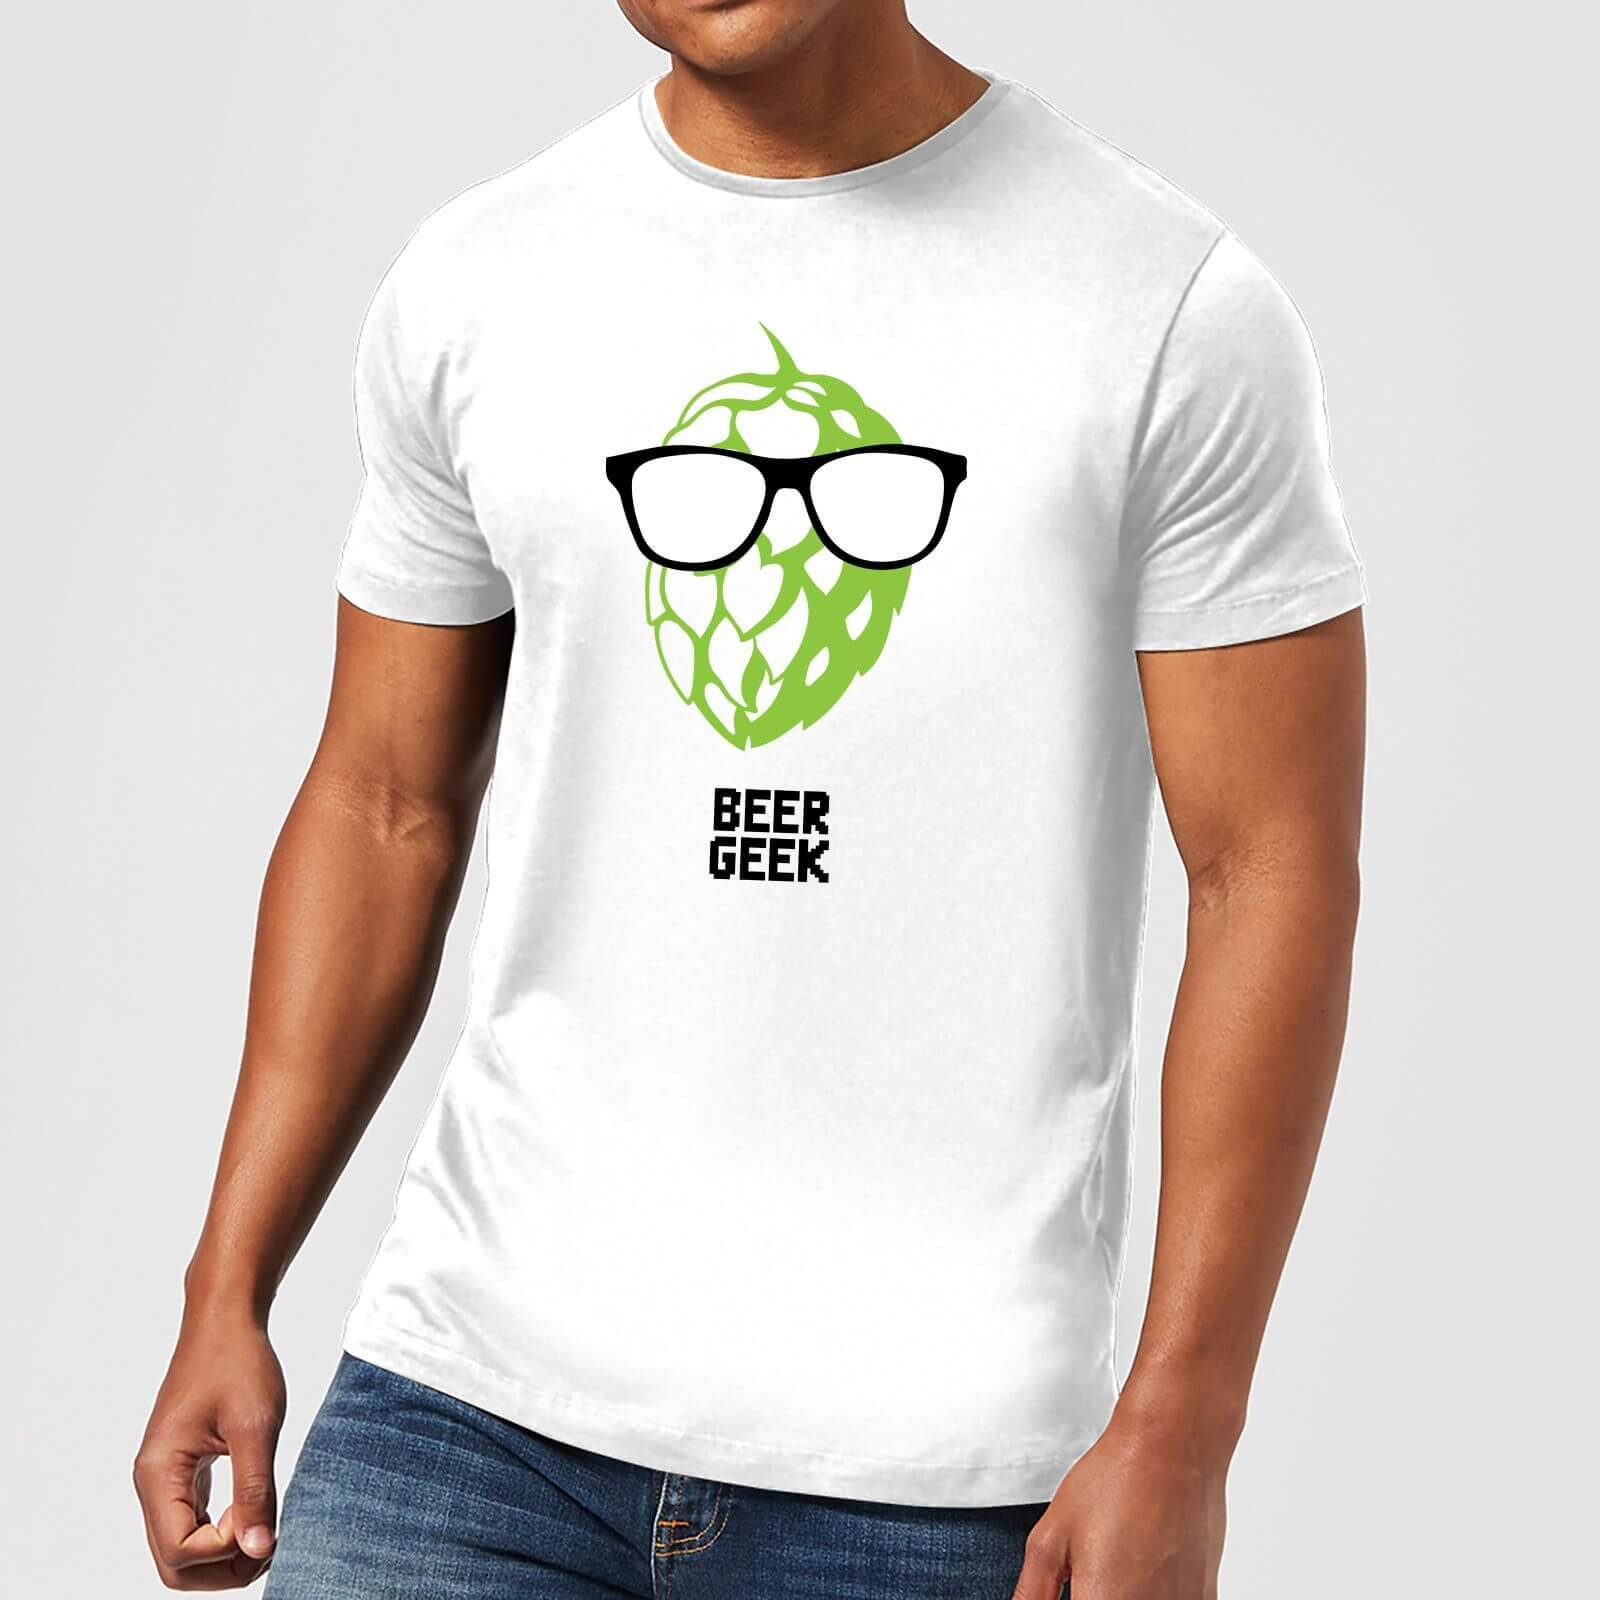 Beershield Beer Geek Men's T-Shirt - S - White